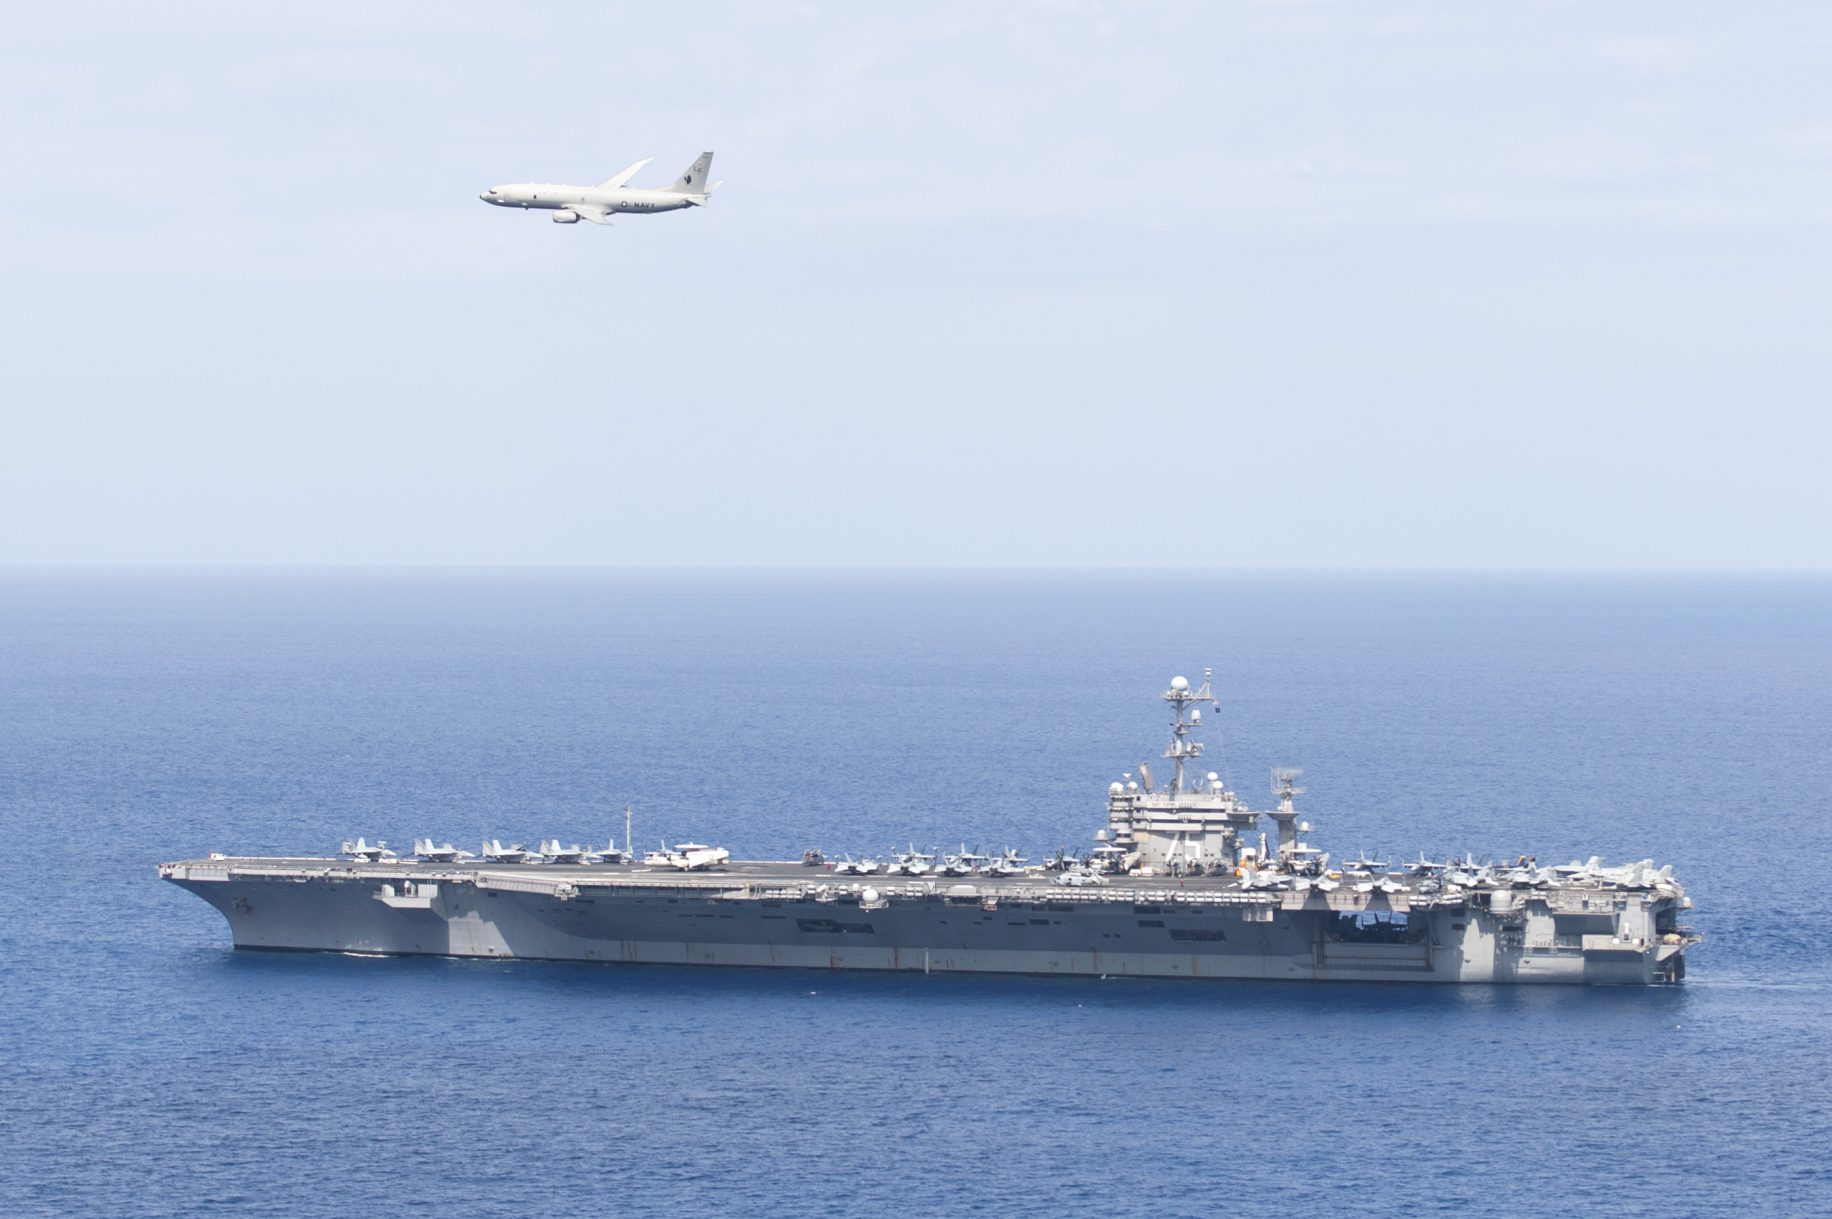 Chinese Navy destroyer shoots laser at US Navy plane, says US